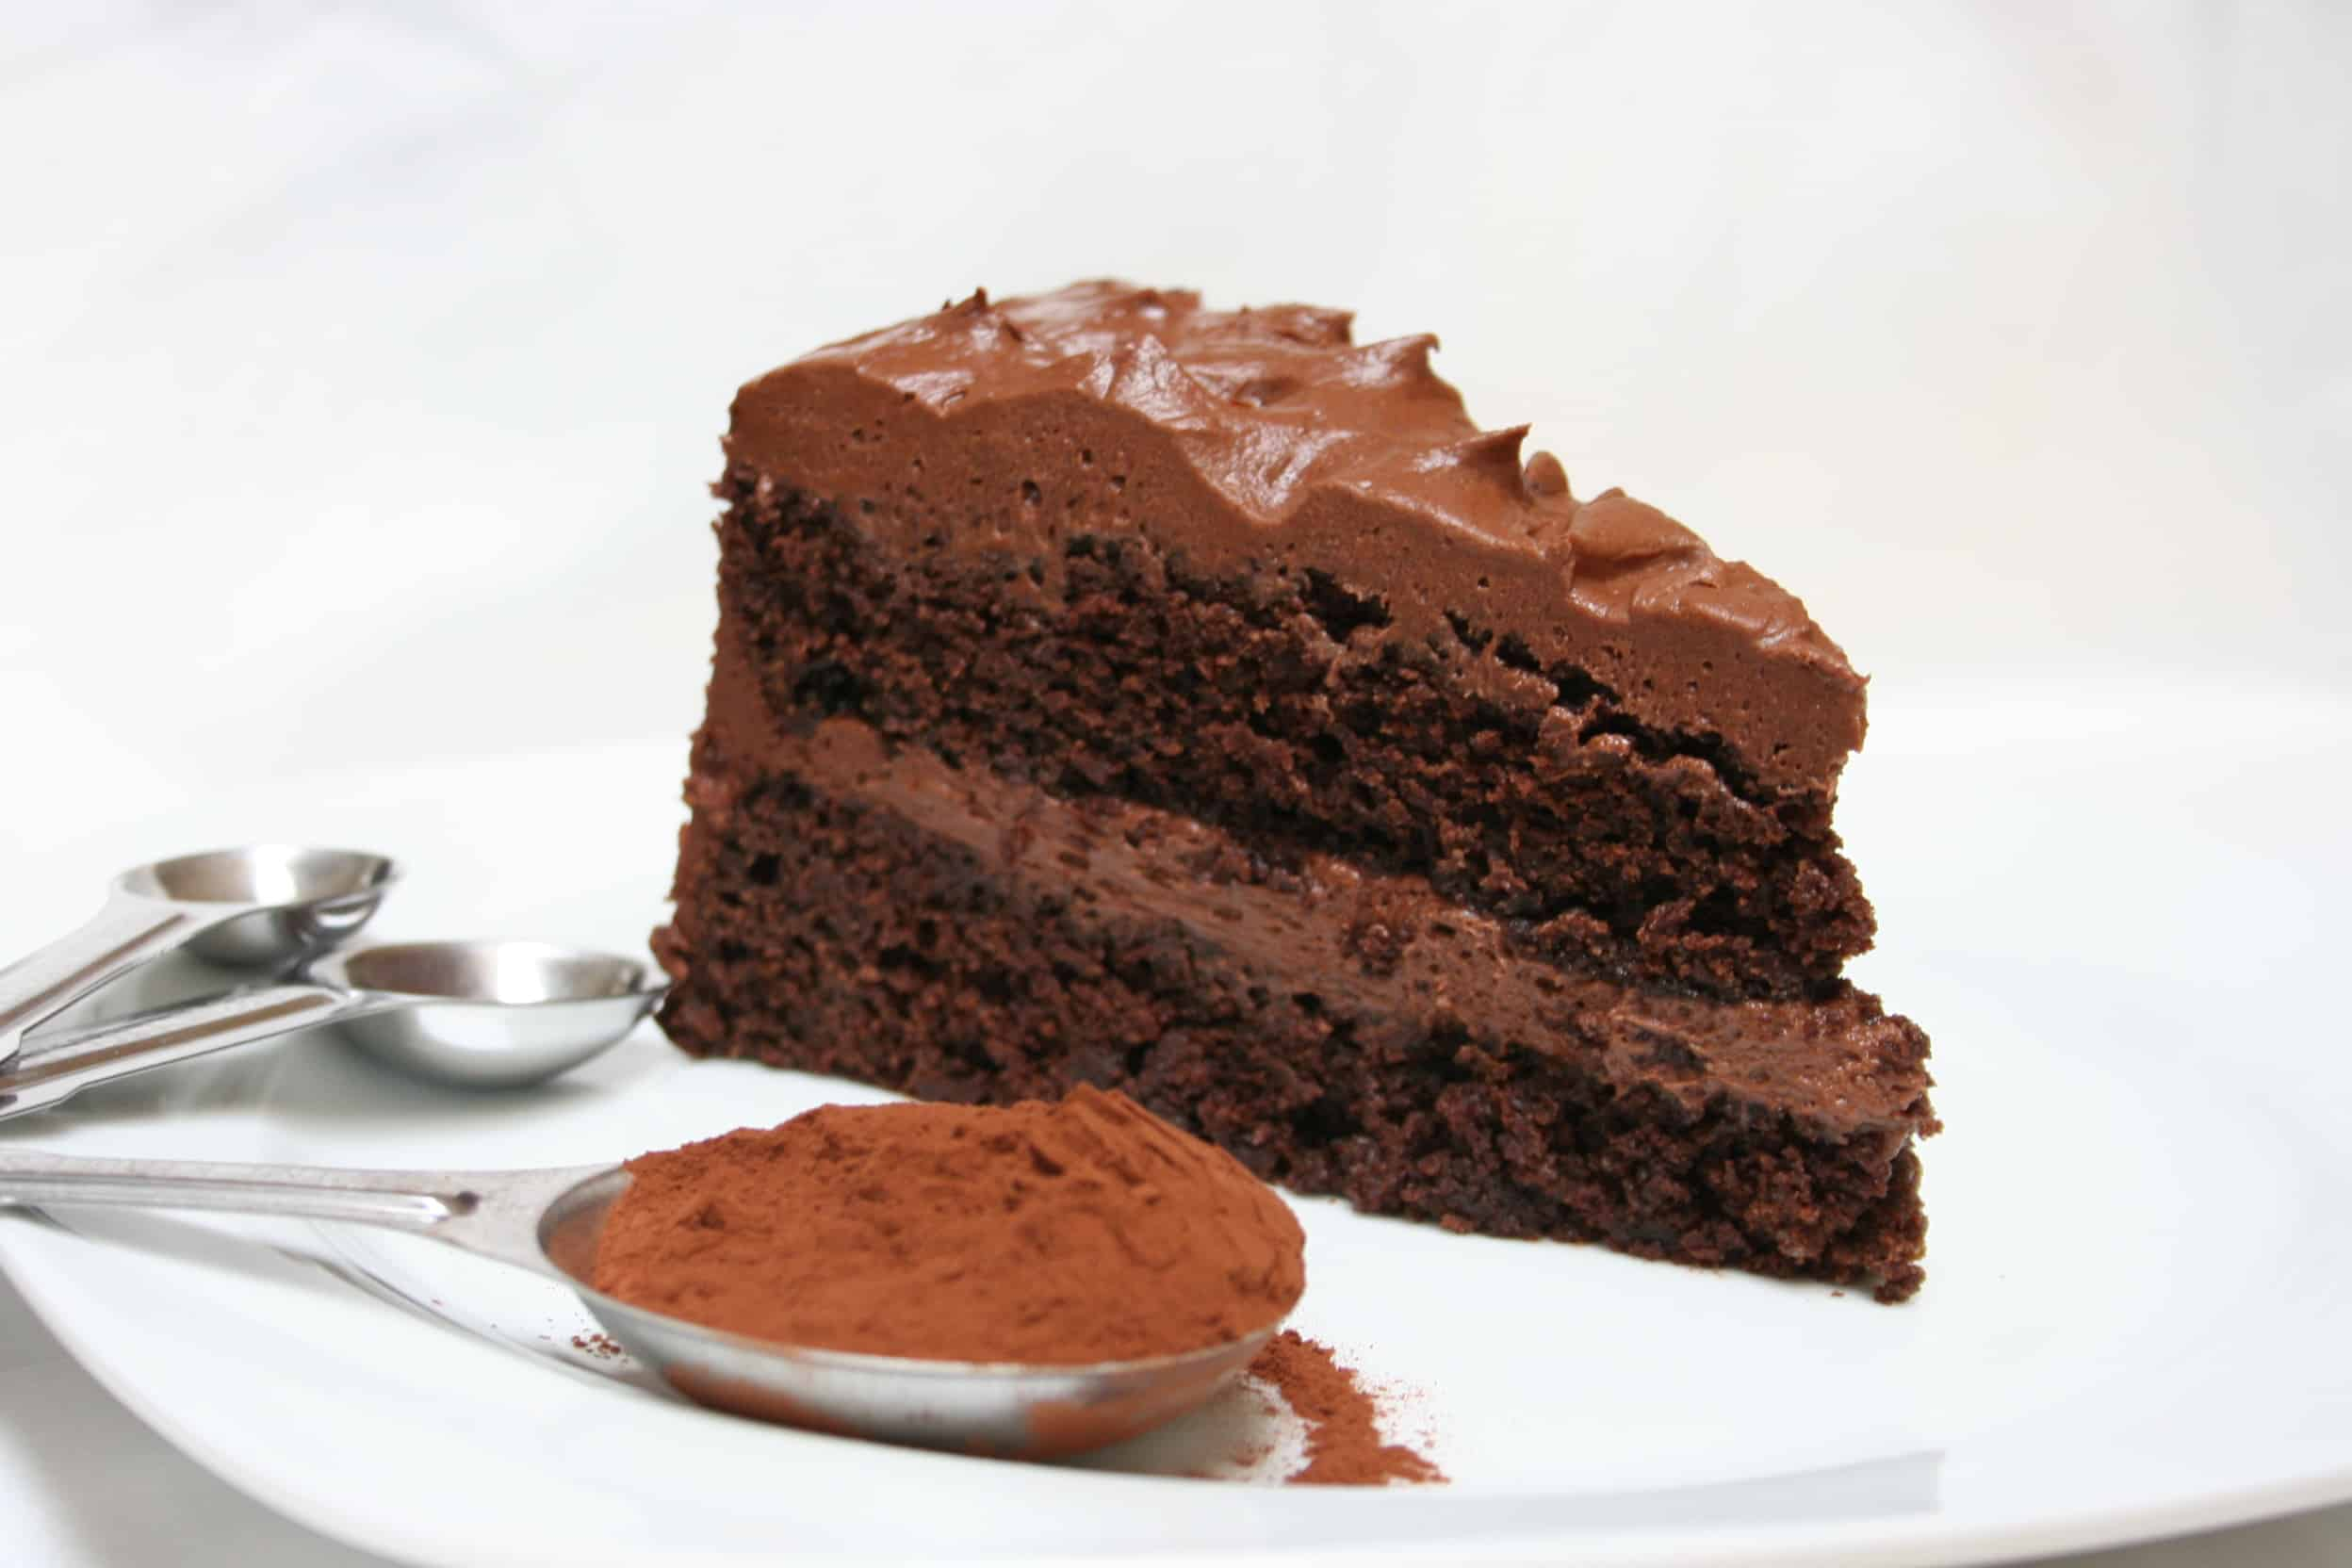 Calories Chocolate Cake Buttercream Frosting